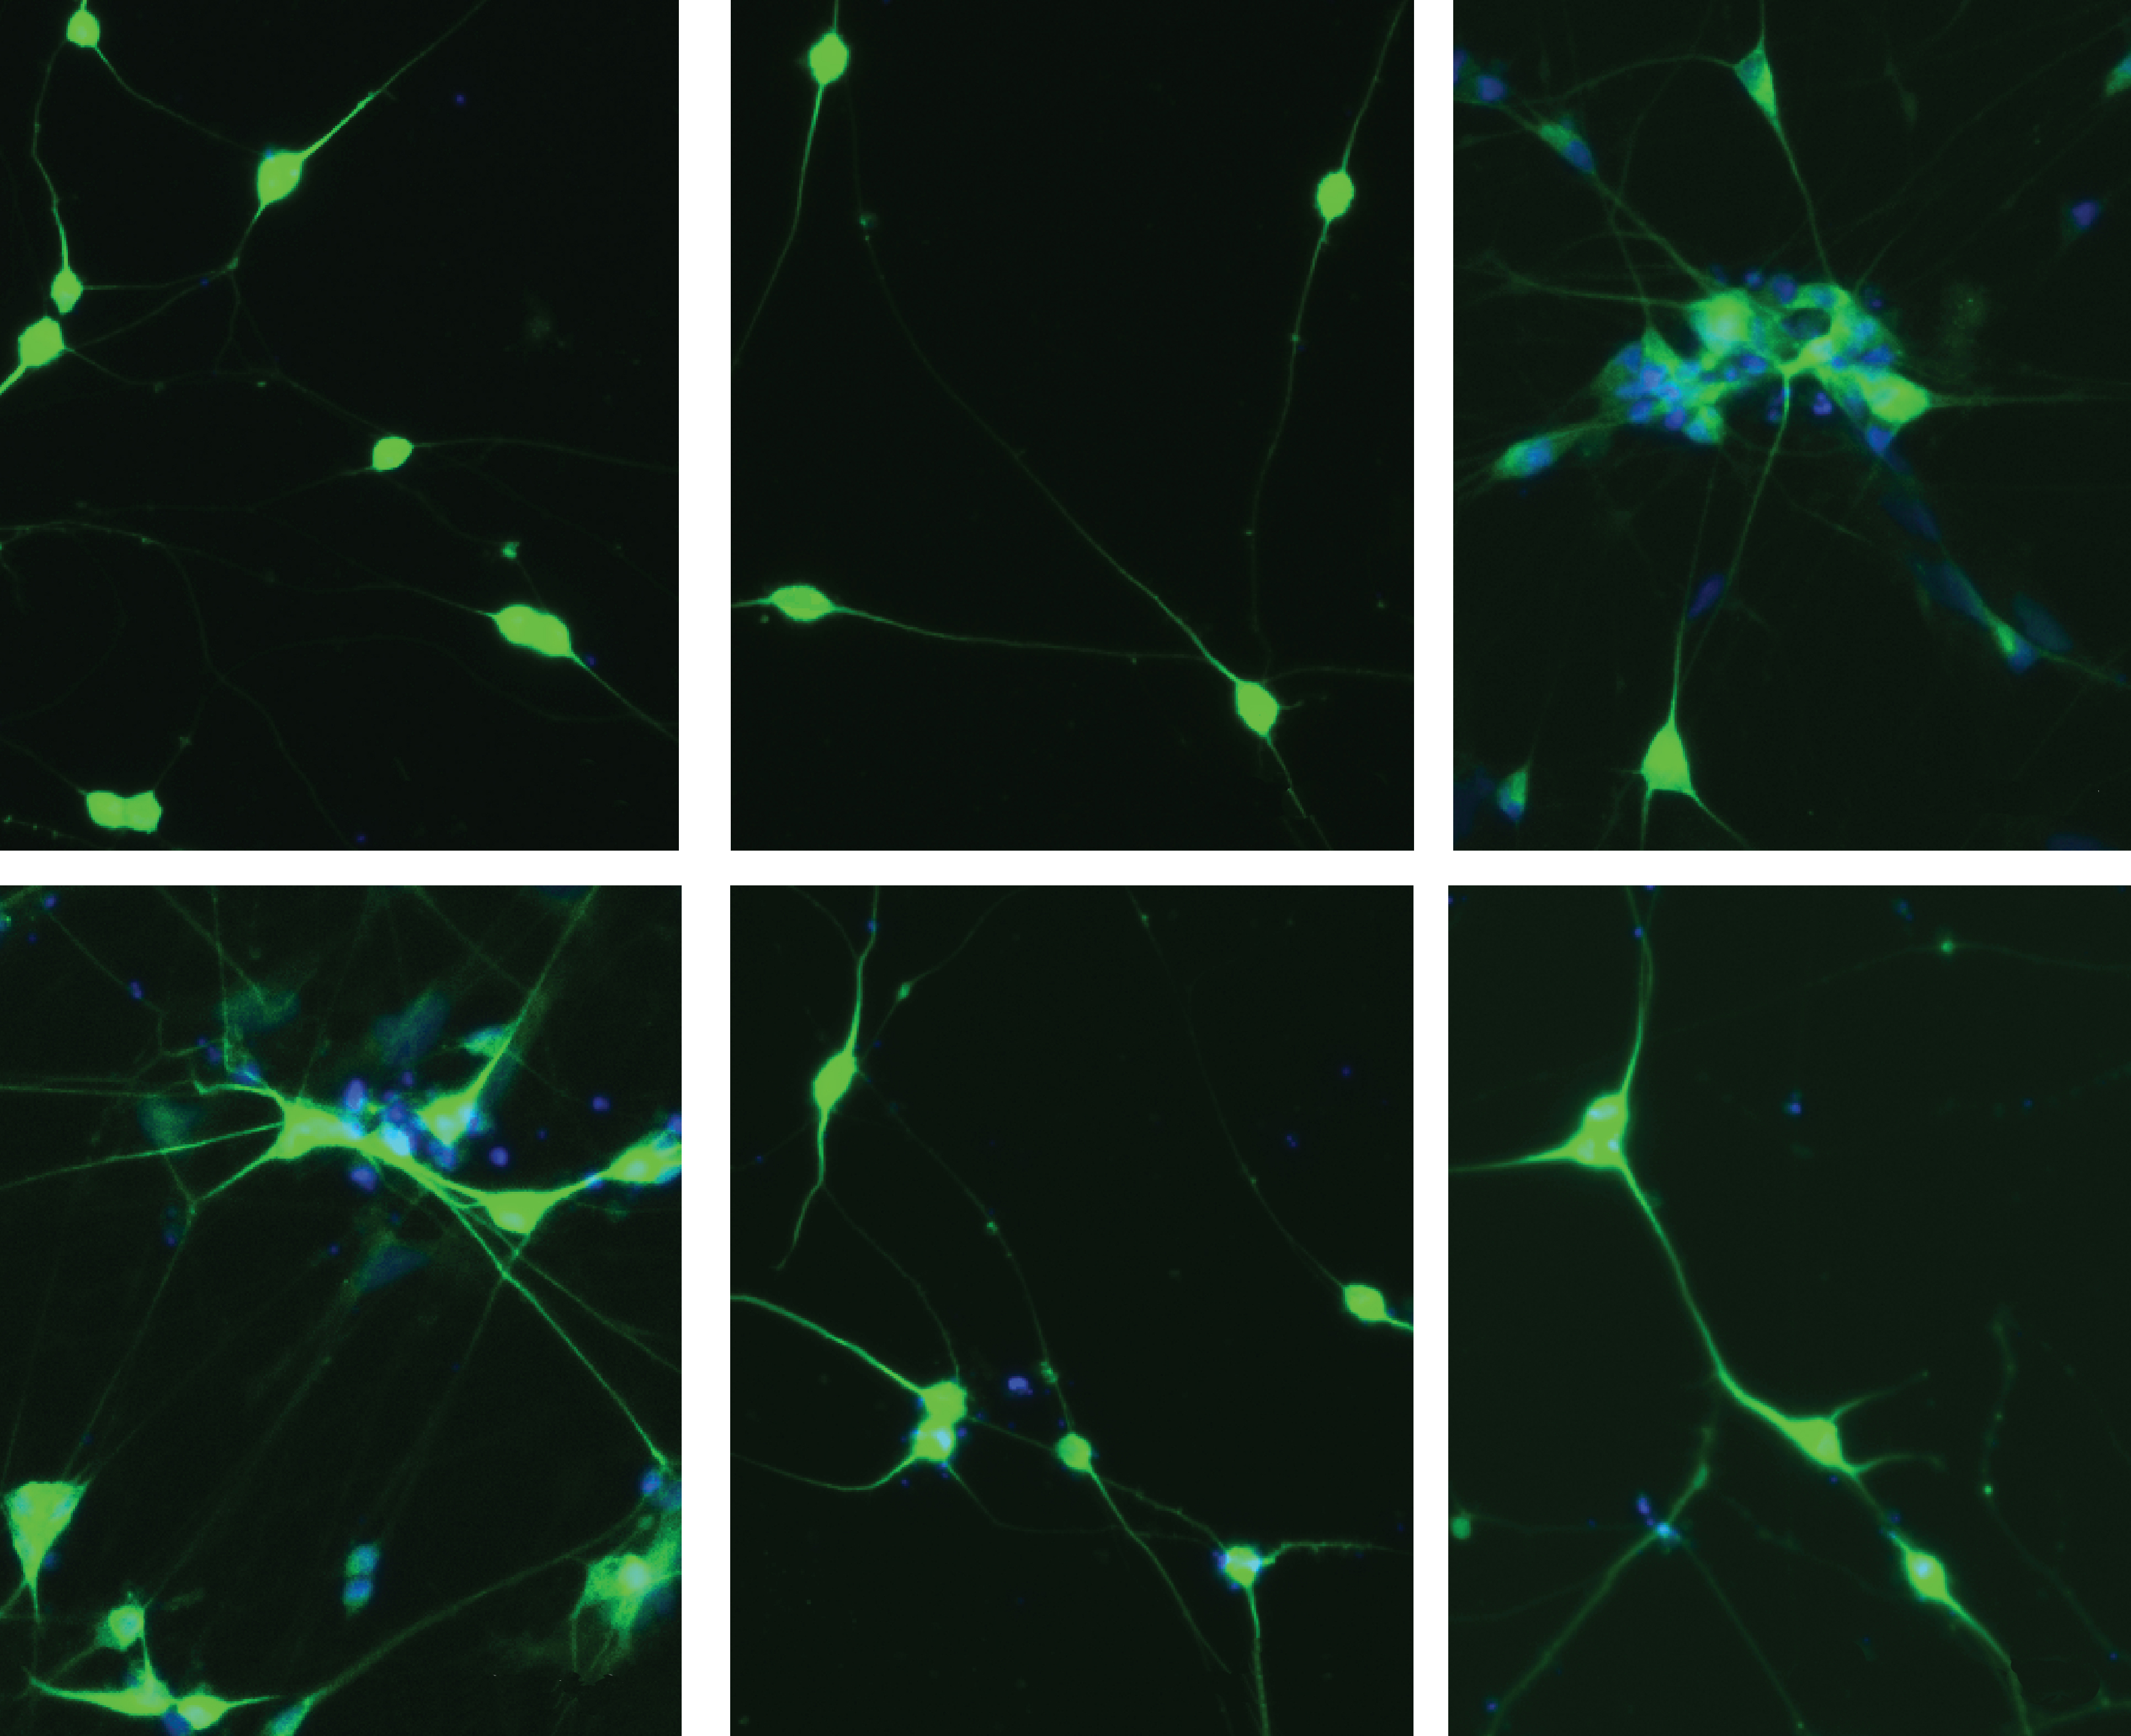 Neurons (green) generated from a human stem-cell line carry one of six mutations associated with schizophrenia, autism or intellectual disability.